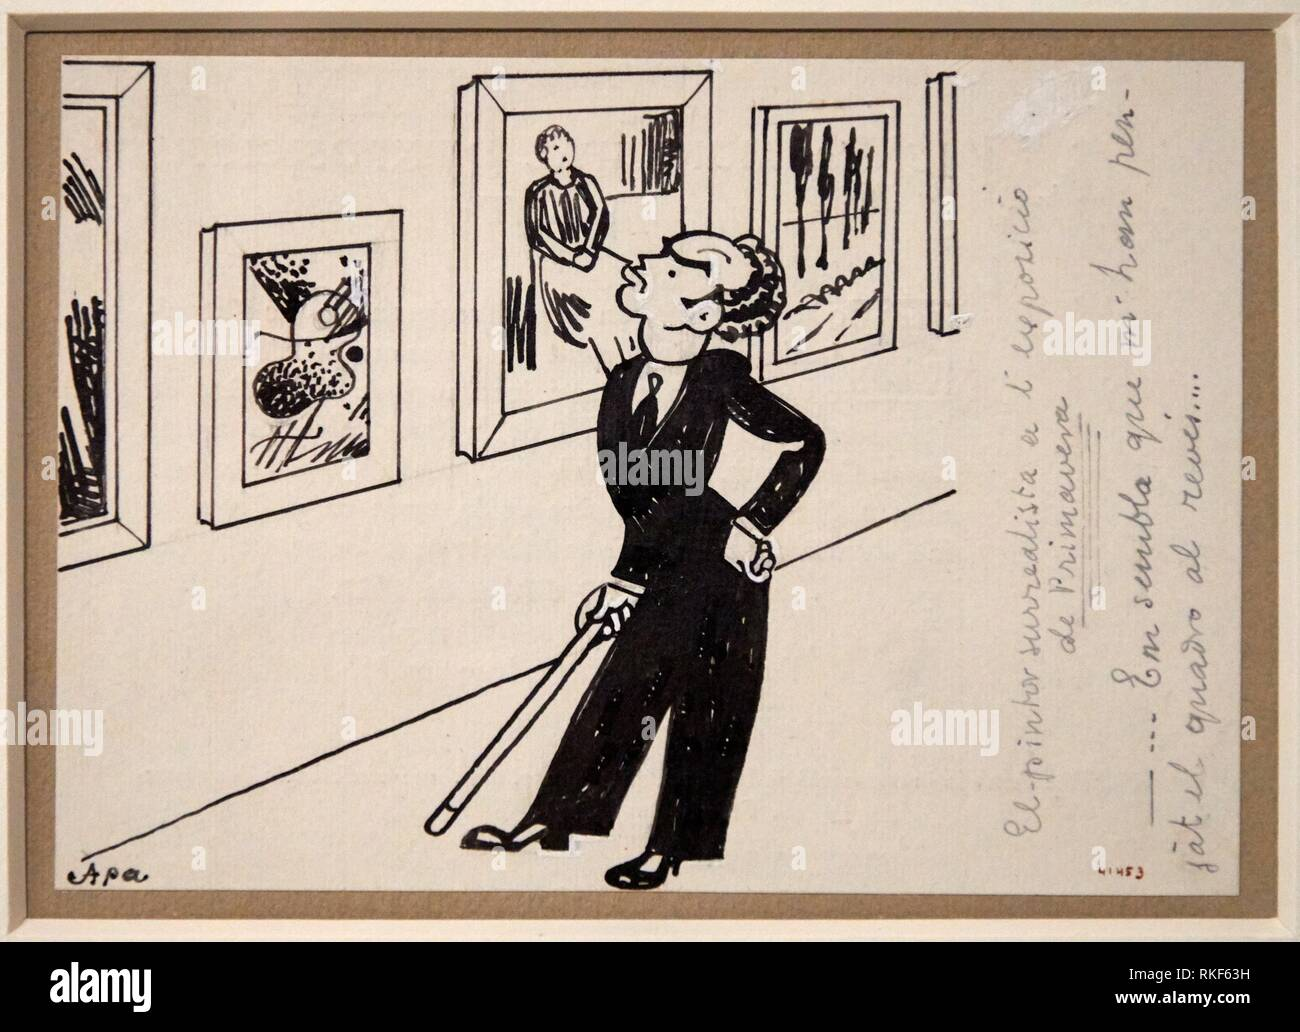 '''The Surrealist Painter at the Spring Exhibition'', 1935, Feliu Elias, National Museum of Catalan Art, Museu Nacional d Art de Catalunya, MNAC, - Stock Image